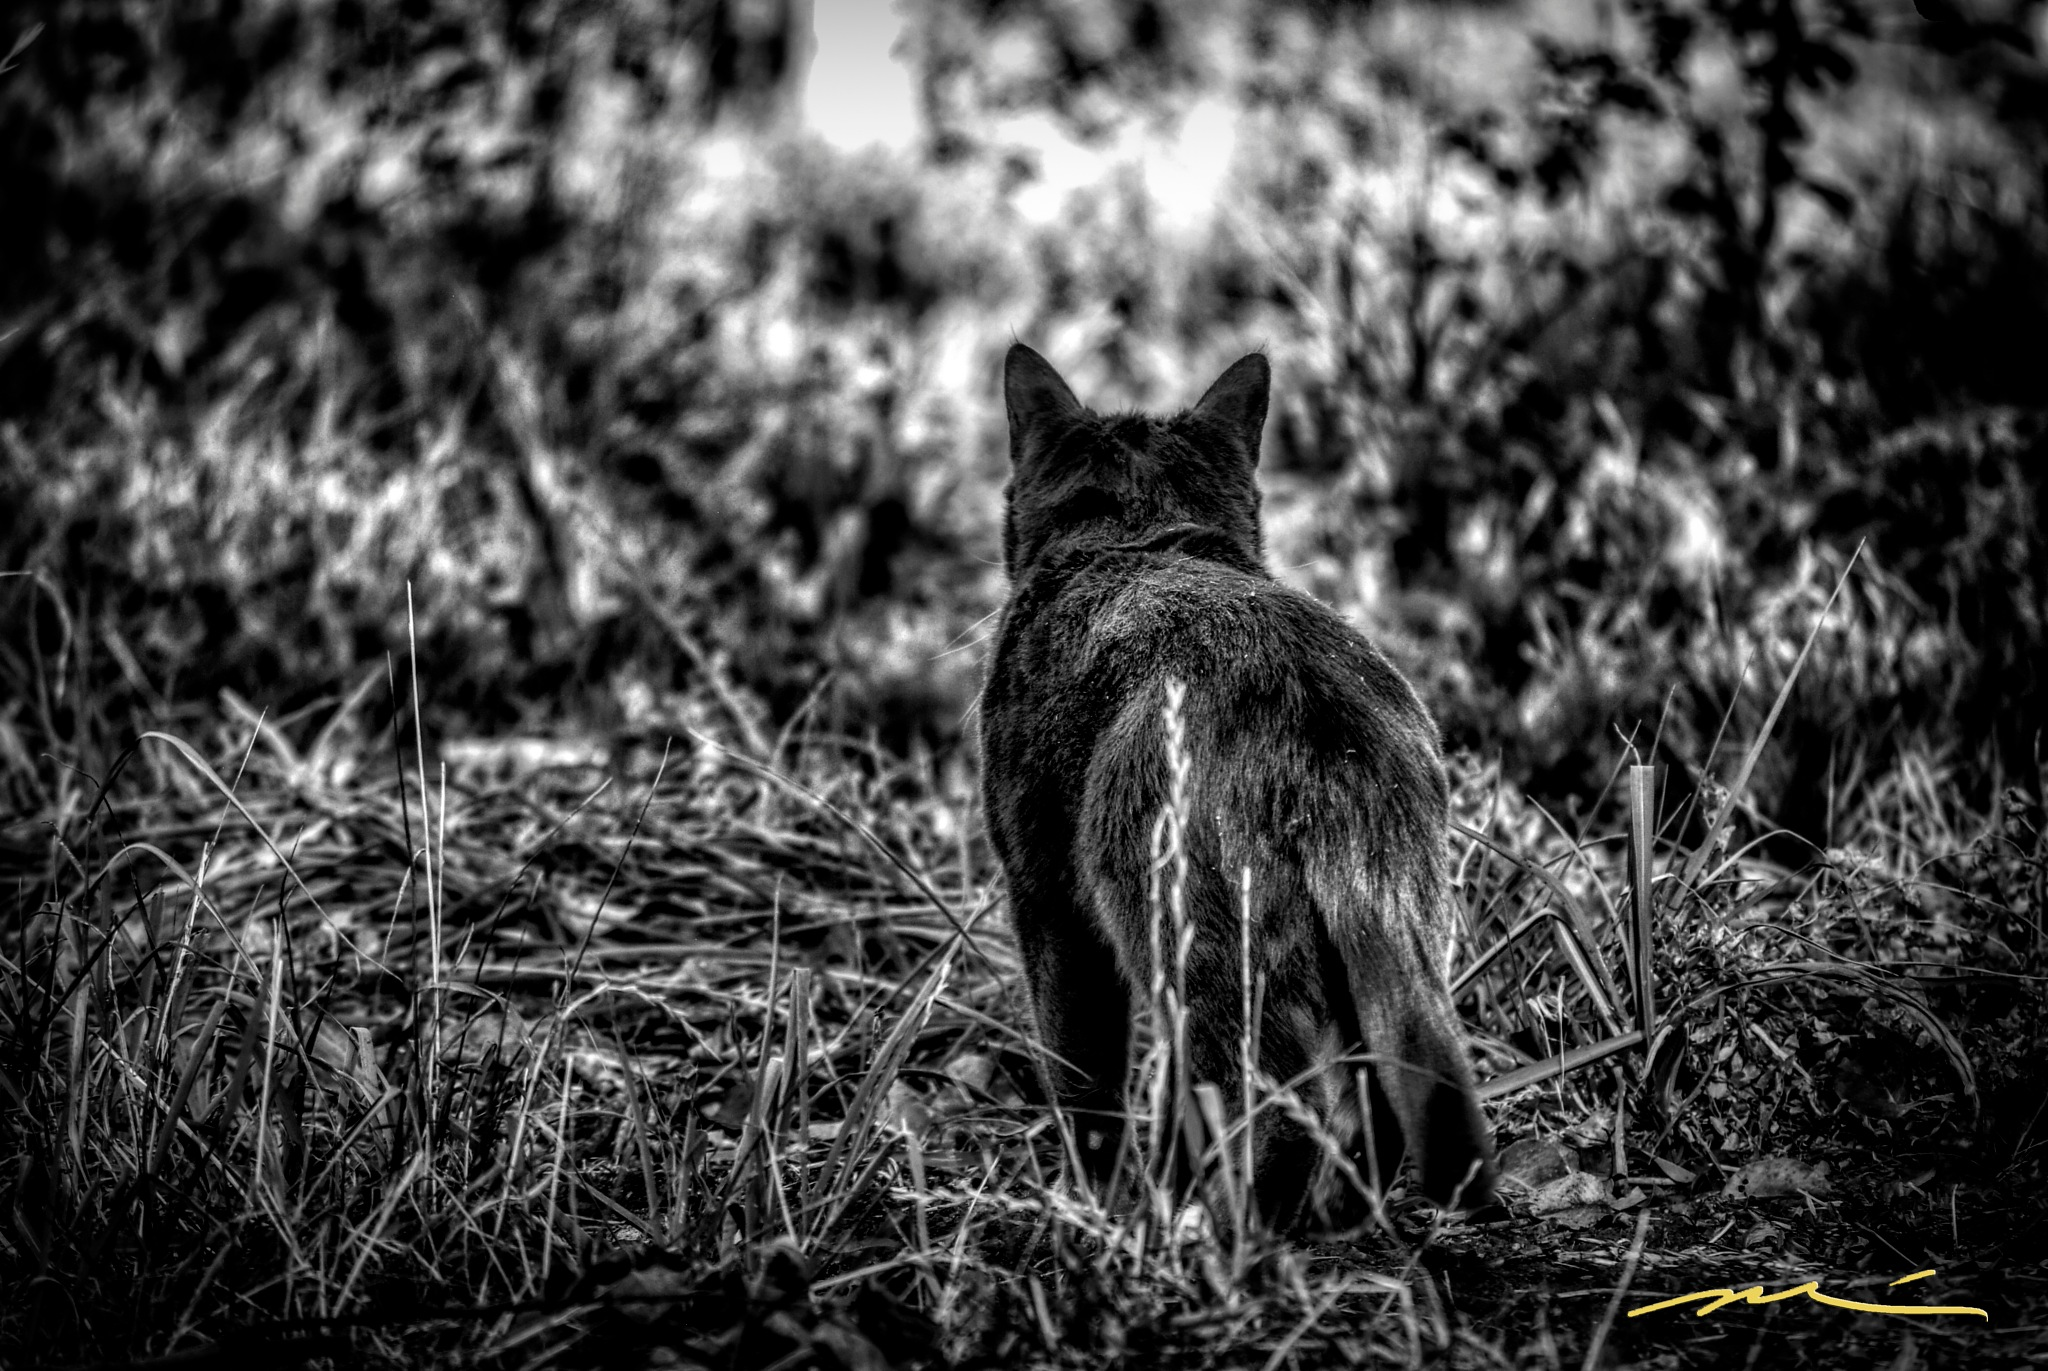 On The Prowl by Michael D. Davis